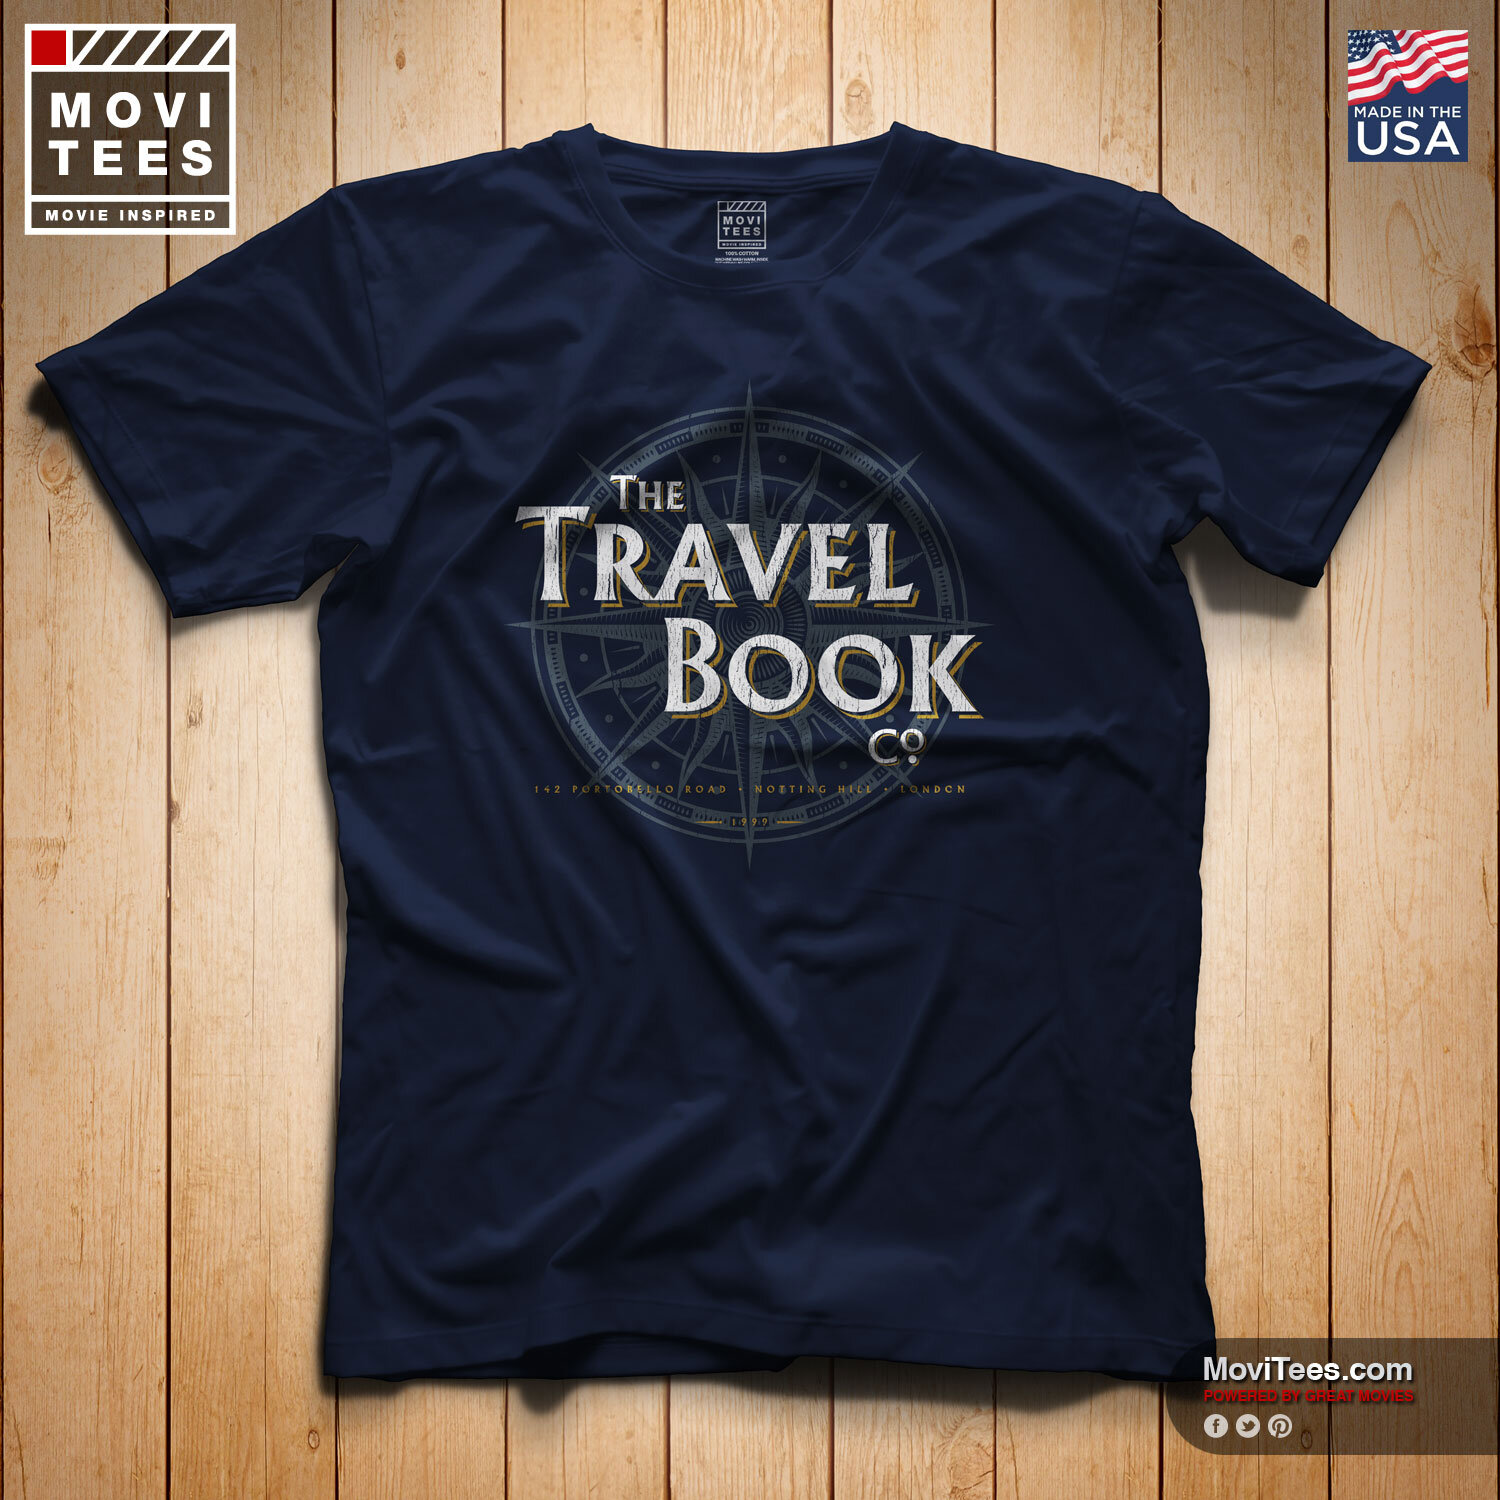 The Travel Book Co T-Shirt